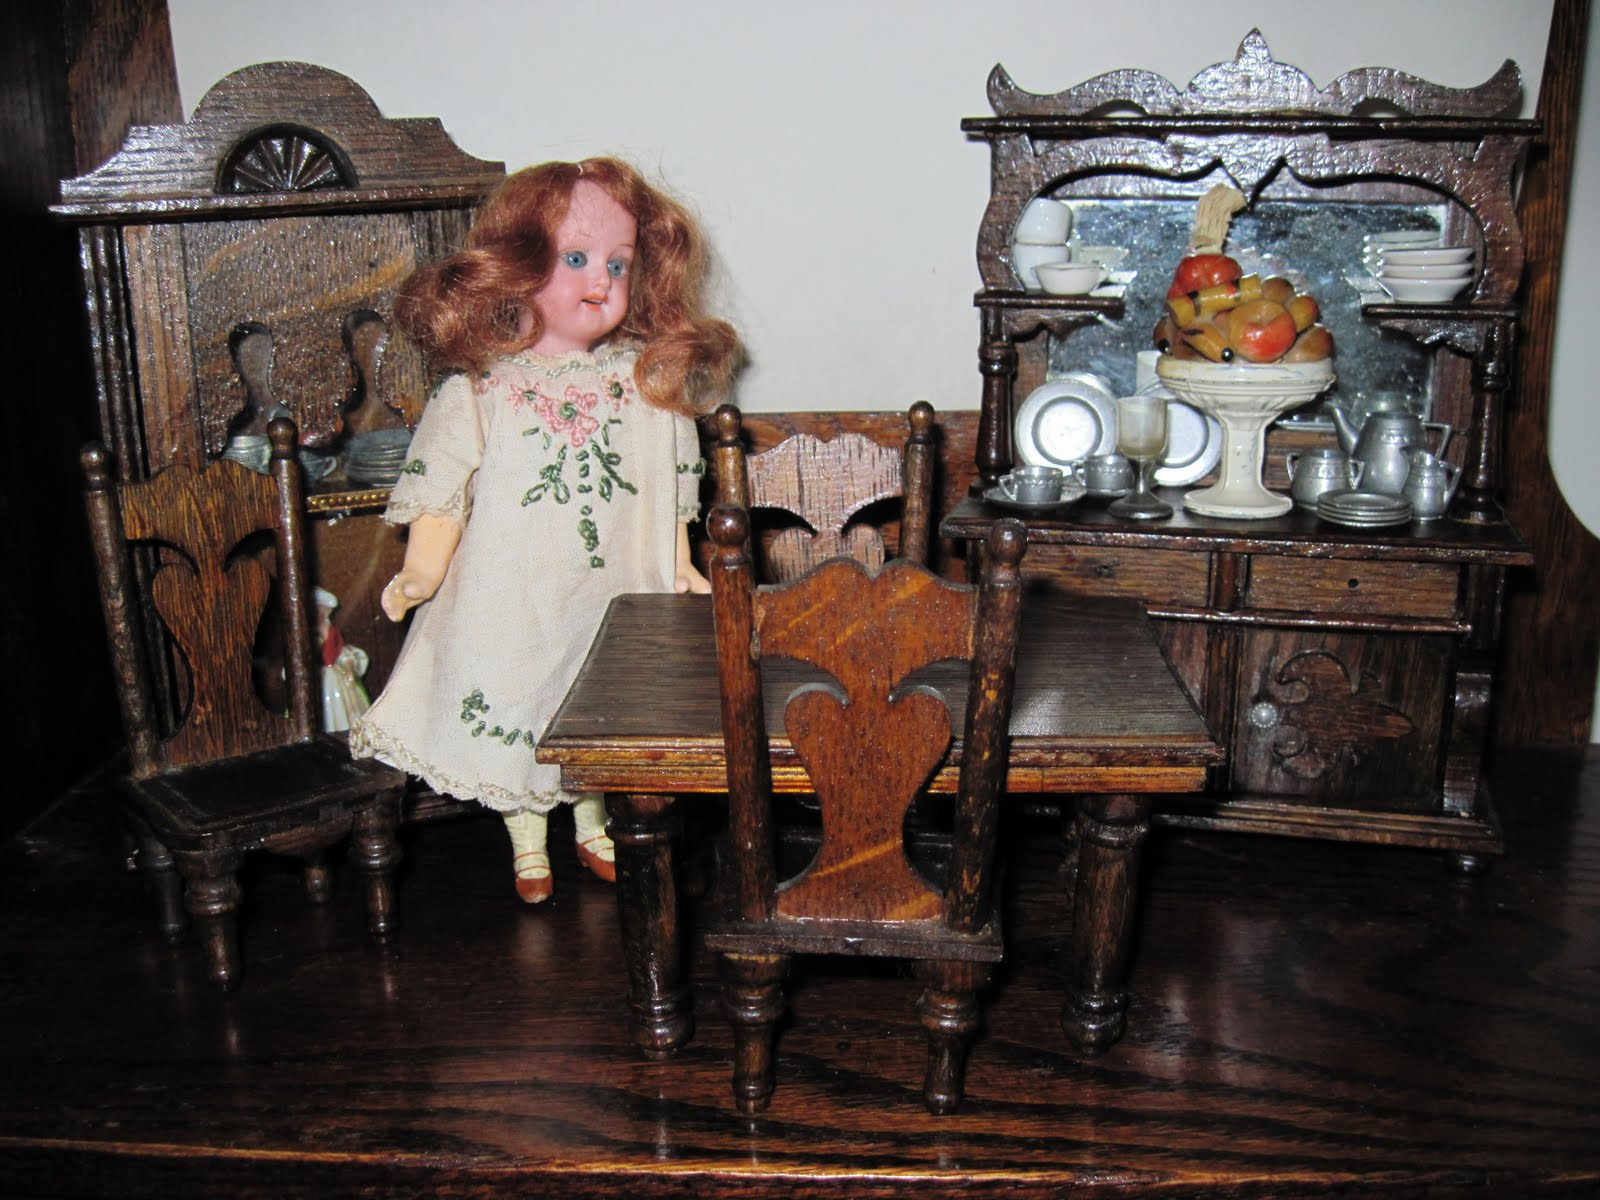 The Tallest Piece, The Buffet, Measures 8 Inches Tall. Below, An Old German  Doll And 1920s Schuco Miniature Bear Find The Set To Be Just Their Size.